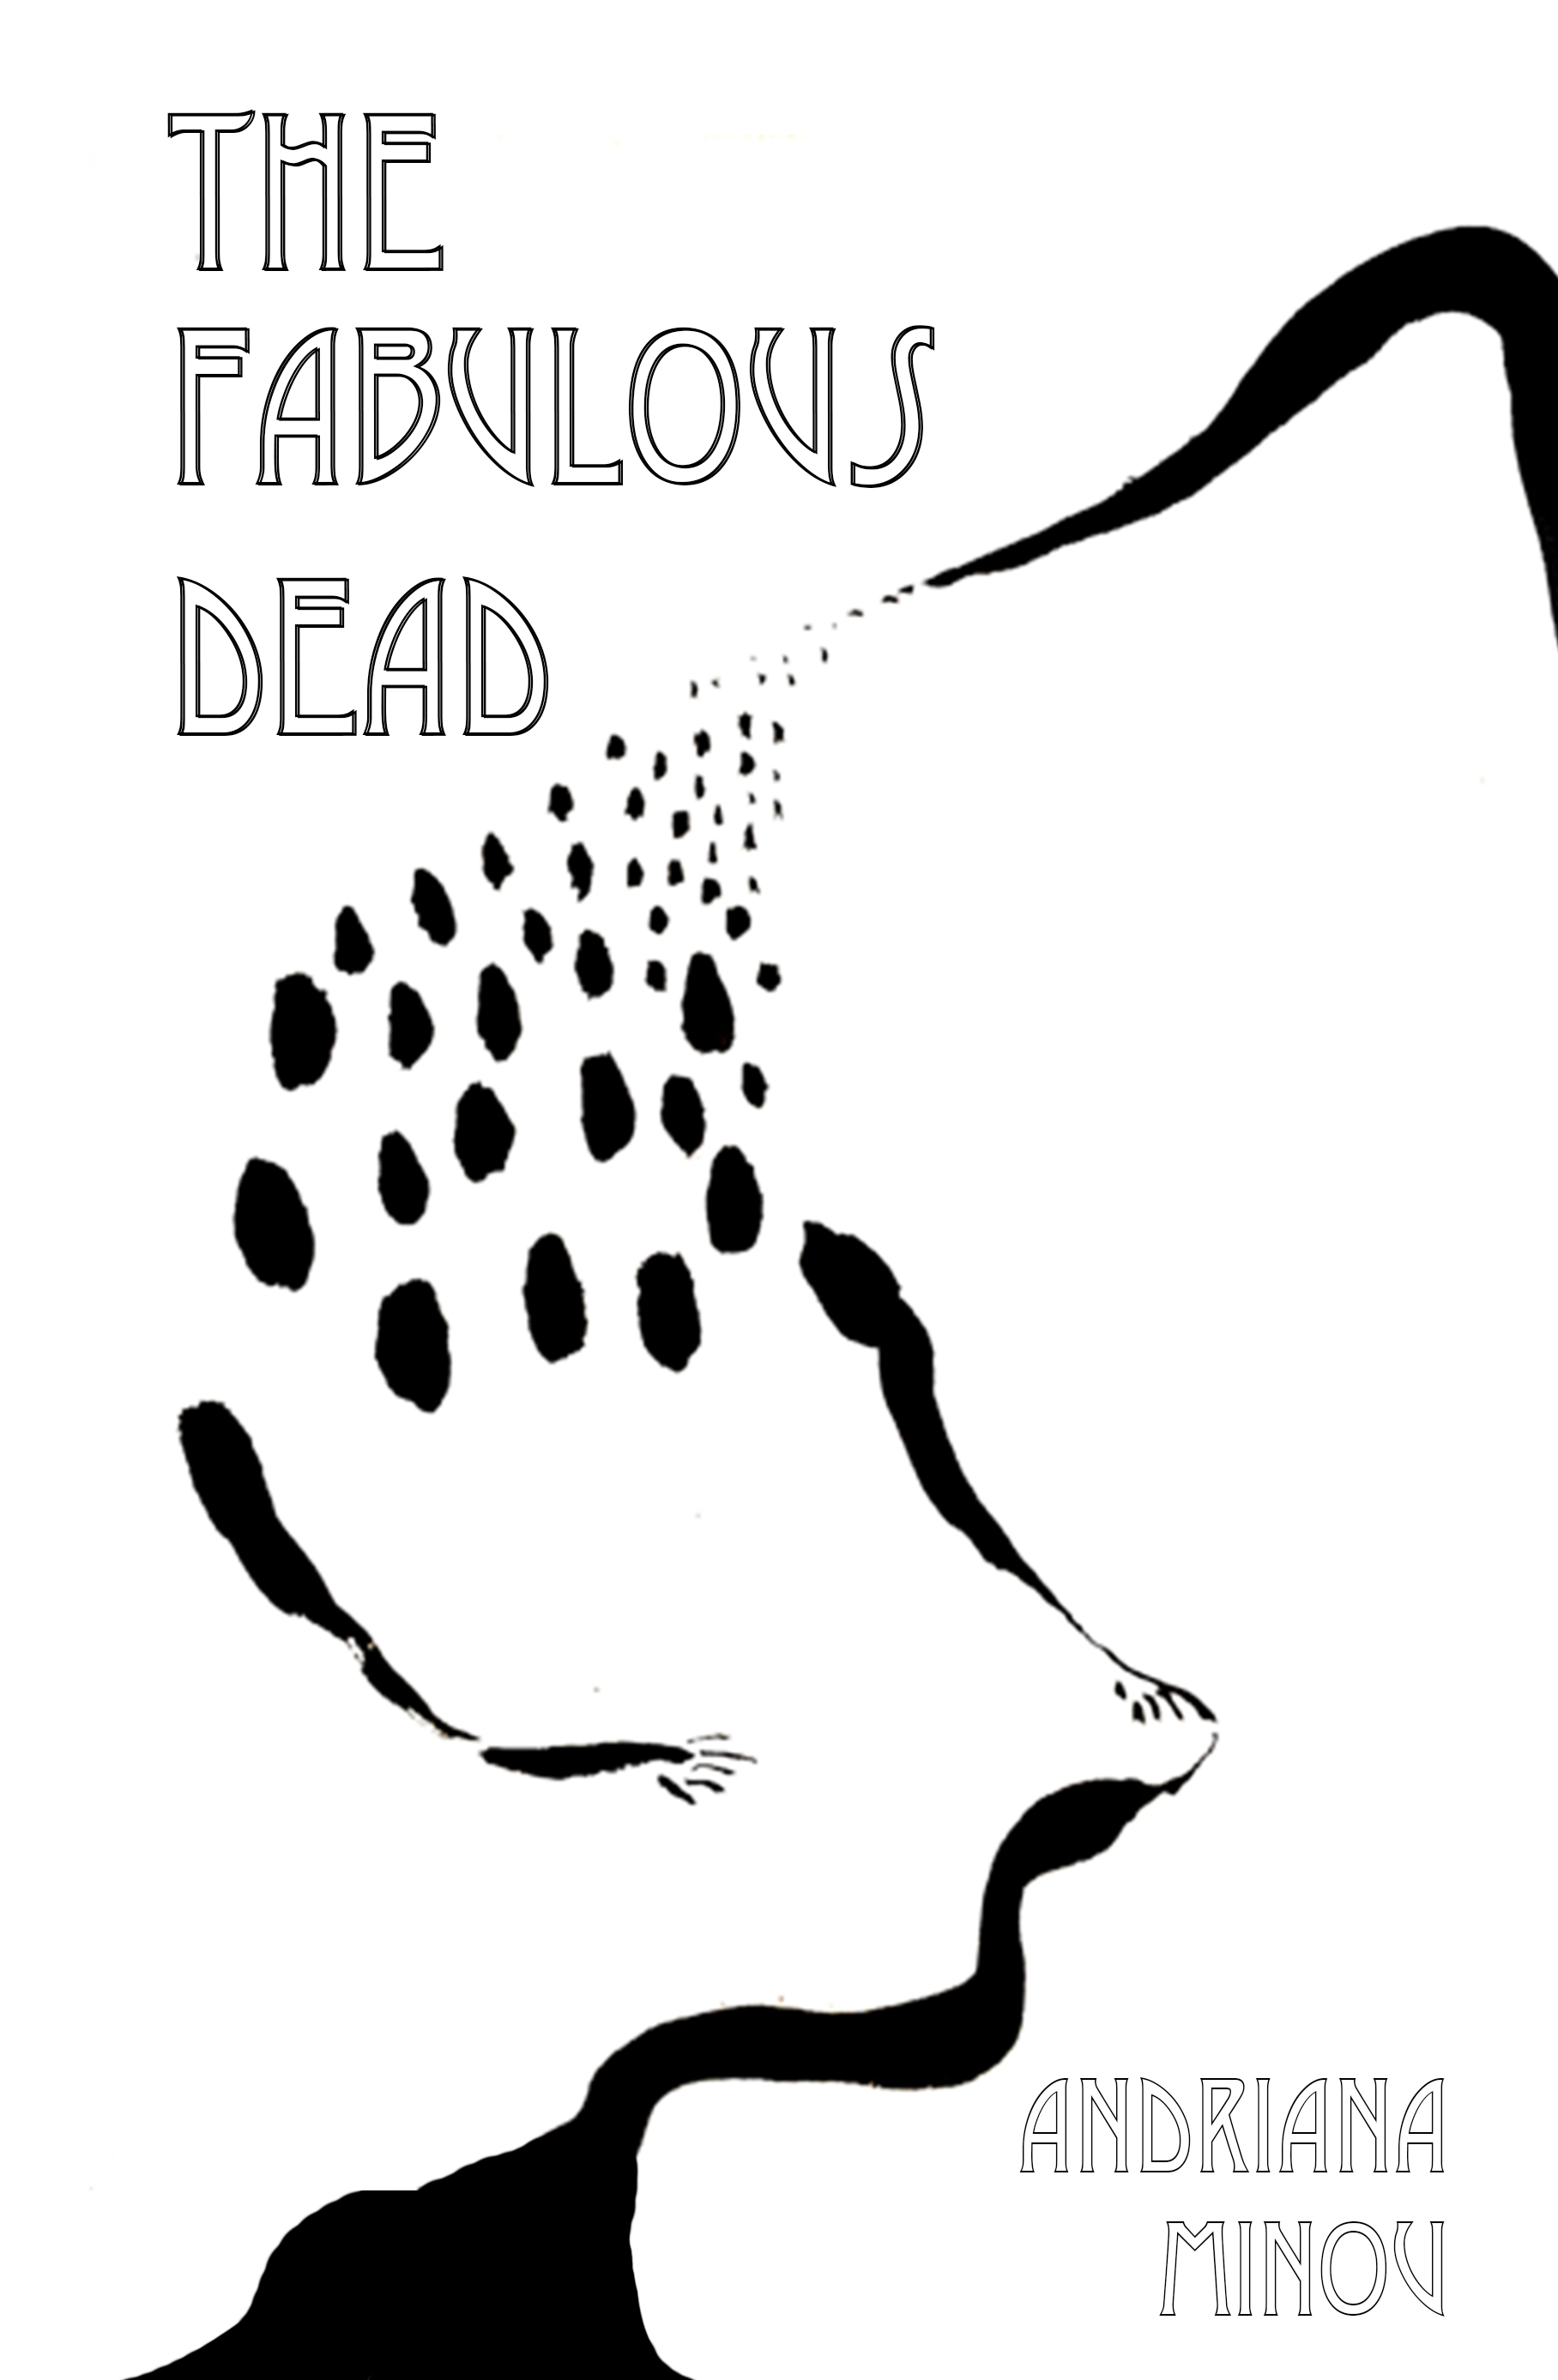 The Fabulous Dead by Andriana Minou I KERNPUNKT Press, 2020